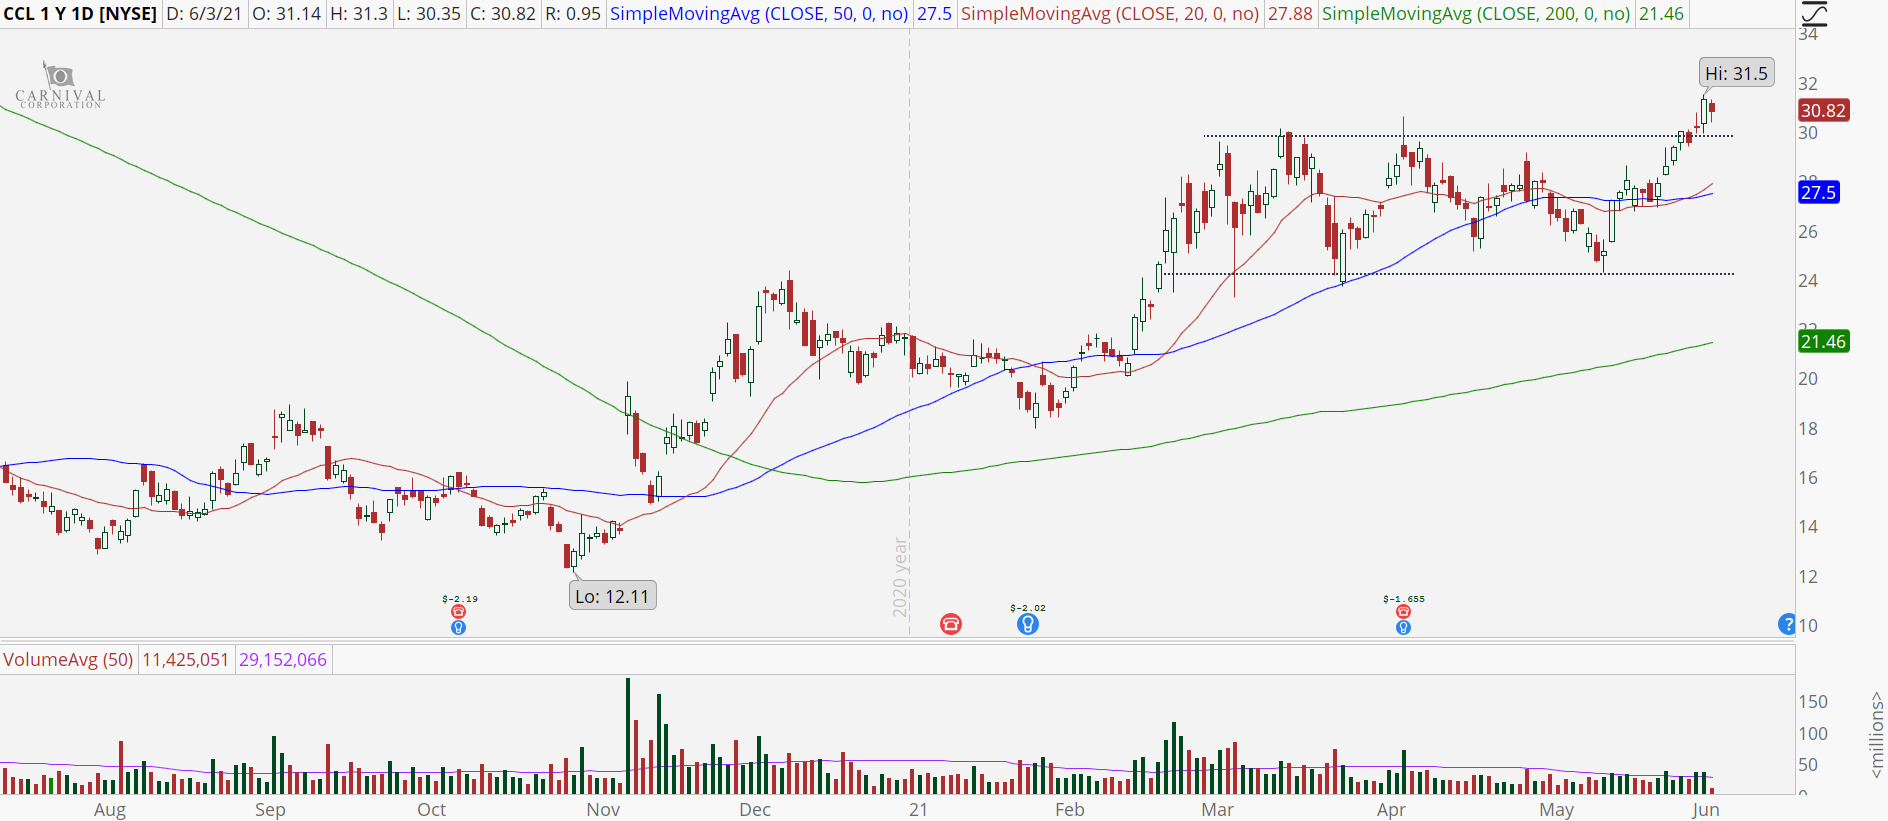 Carnival Cruise (CCL) daily chart with bullish breakout.